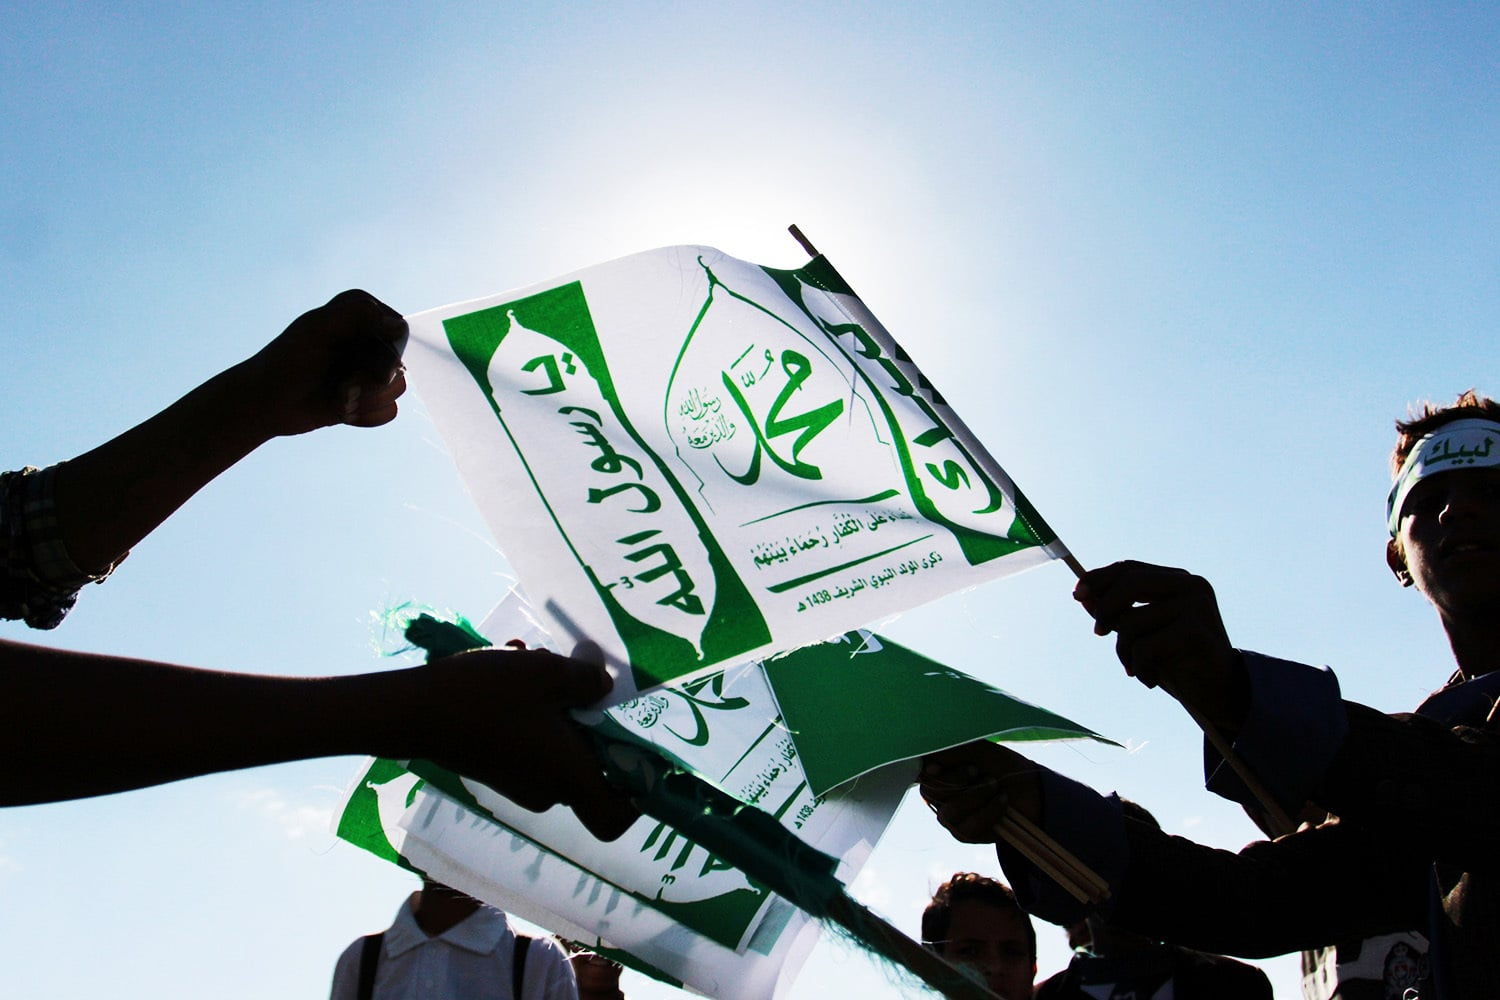 Muslim Yemenis carry placards during a gathering marking the birth anniversary of Prophet Muhammad (PBUH).—AFP